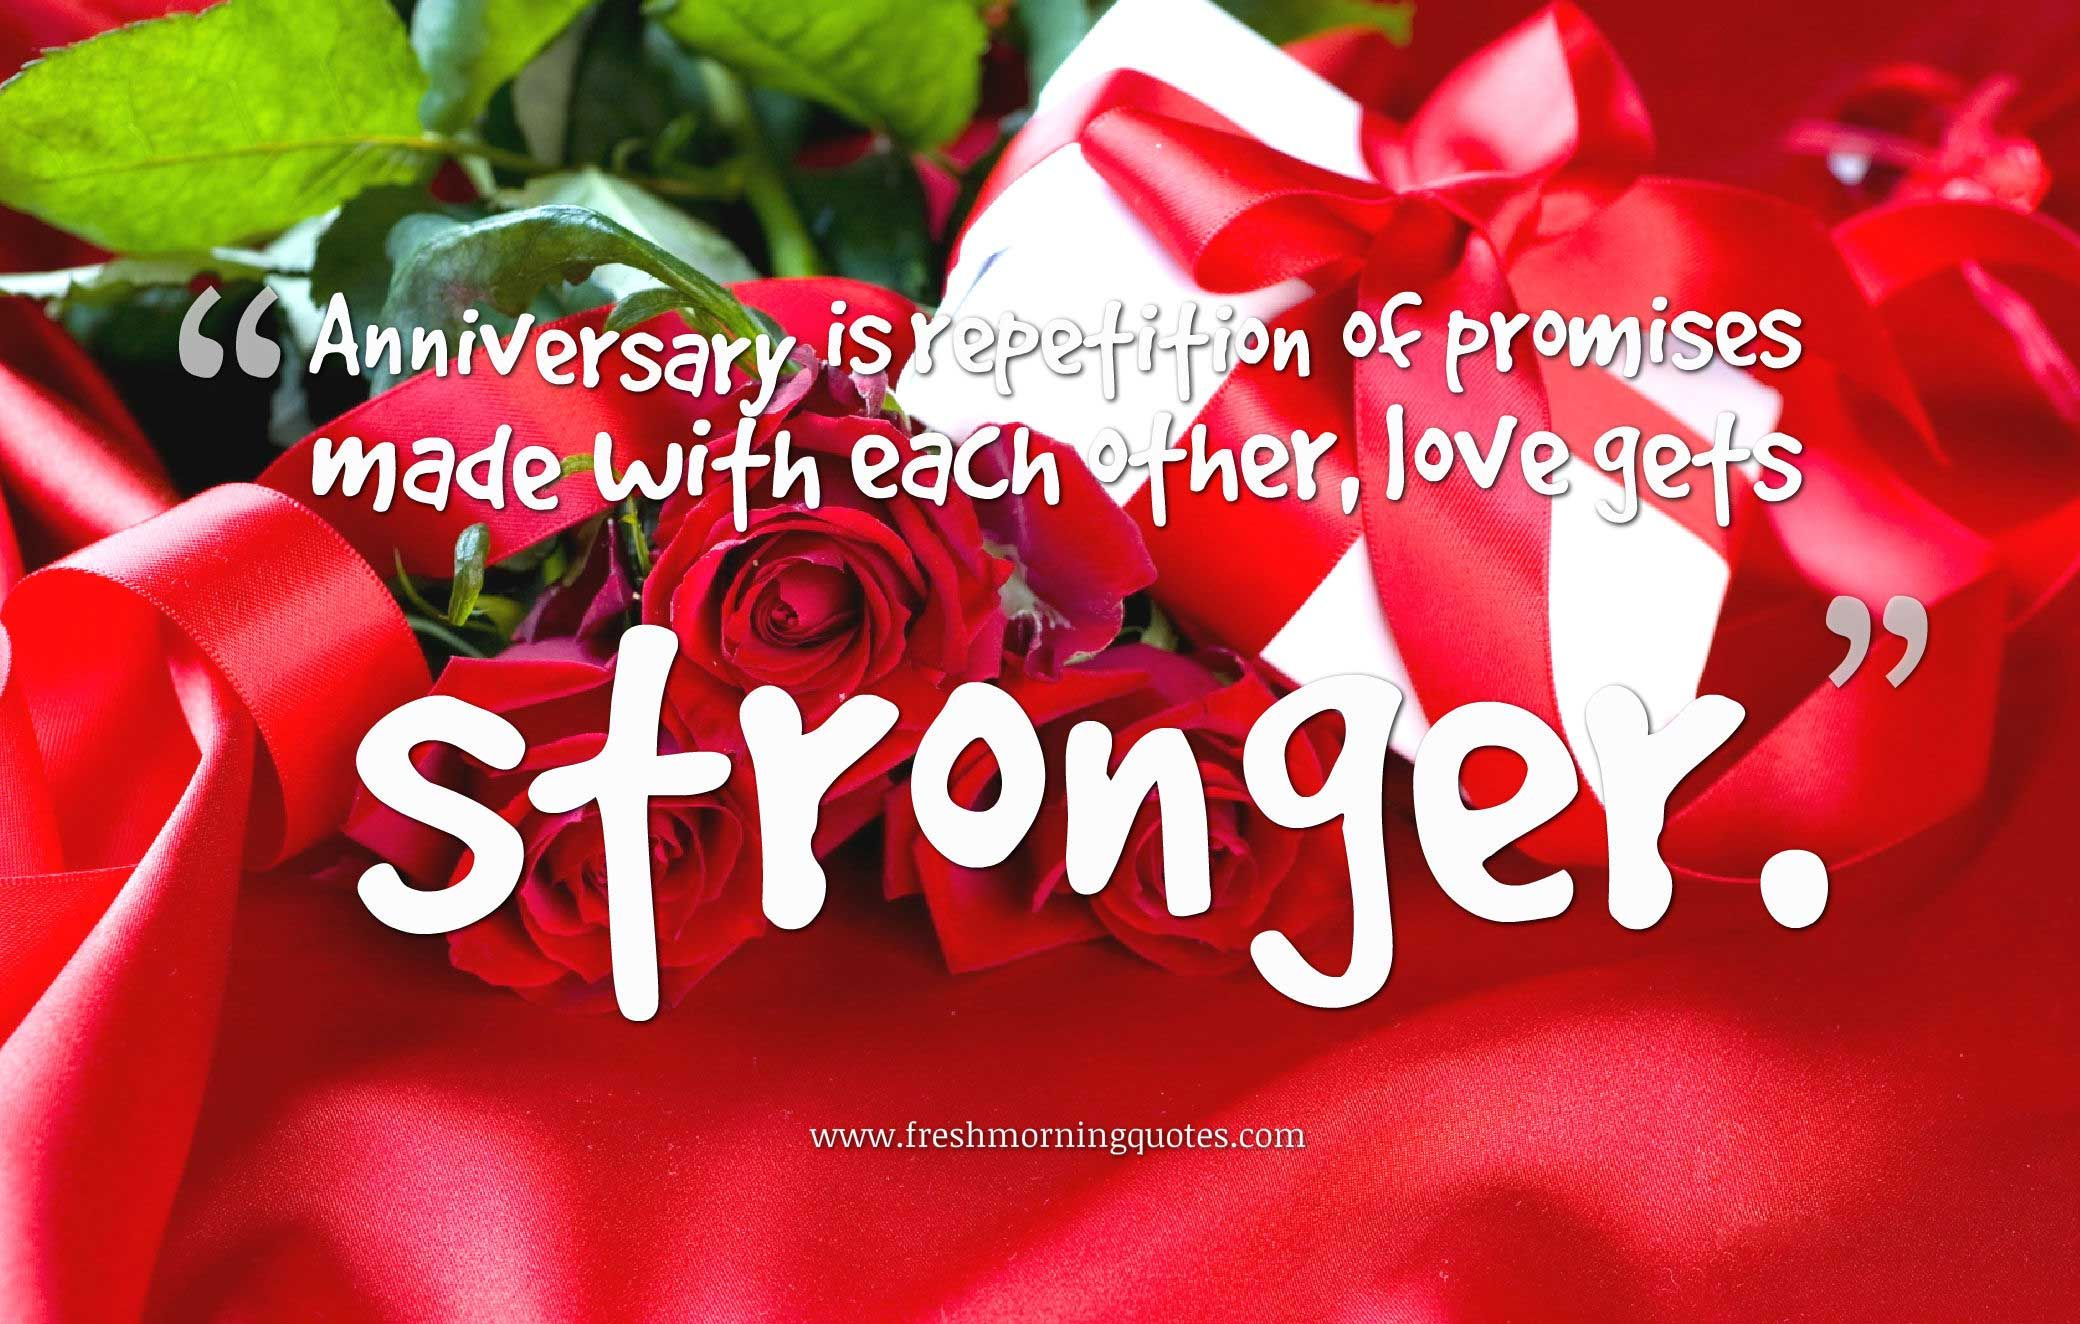 Wedding decoration images hd  Anniversary Status for Whatsapp Wedding Anniversary Wishes Quotes